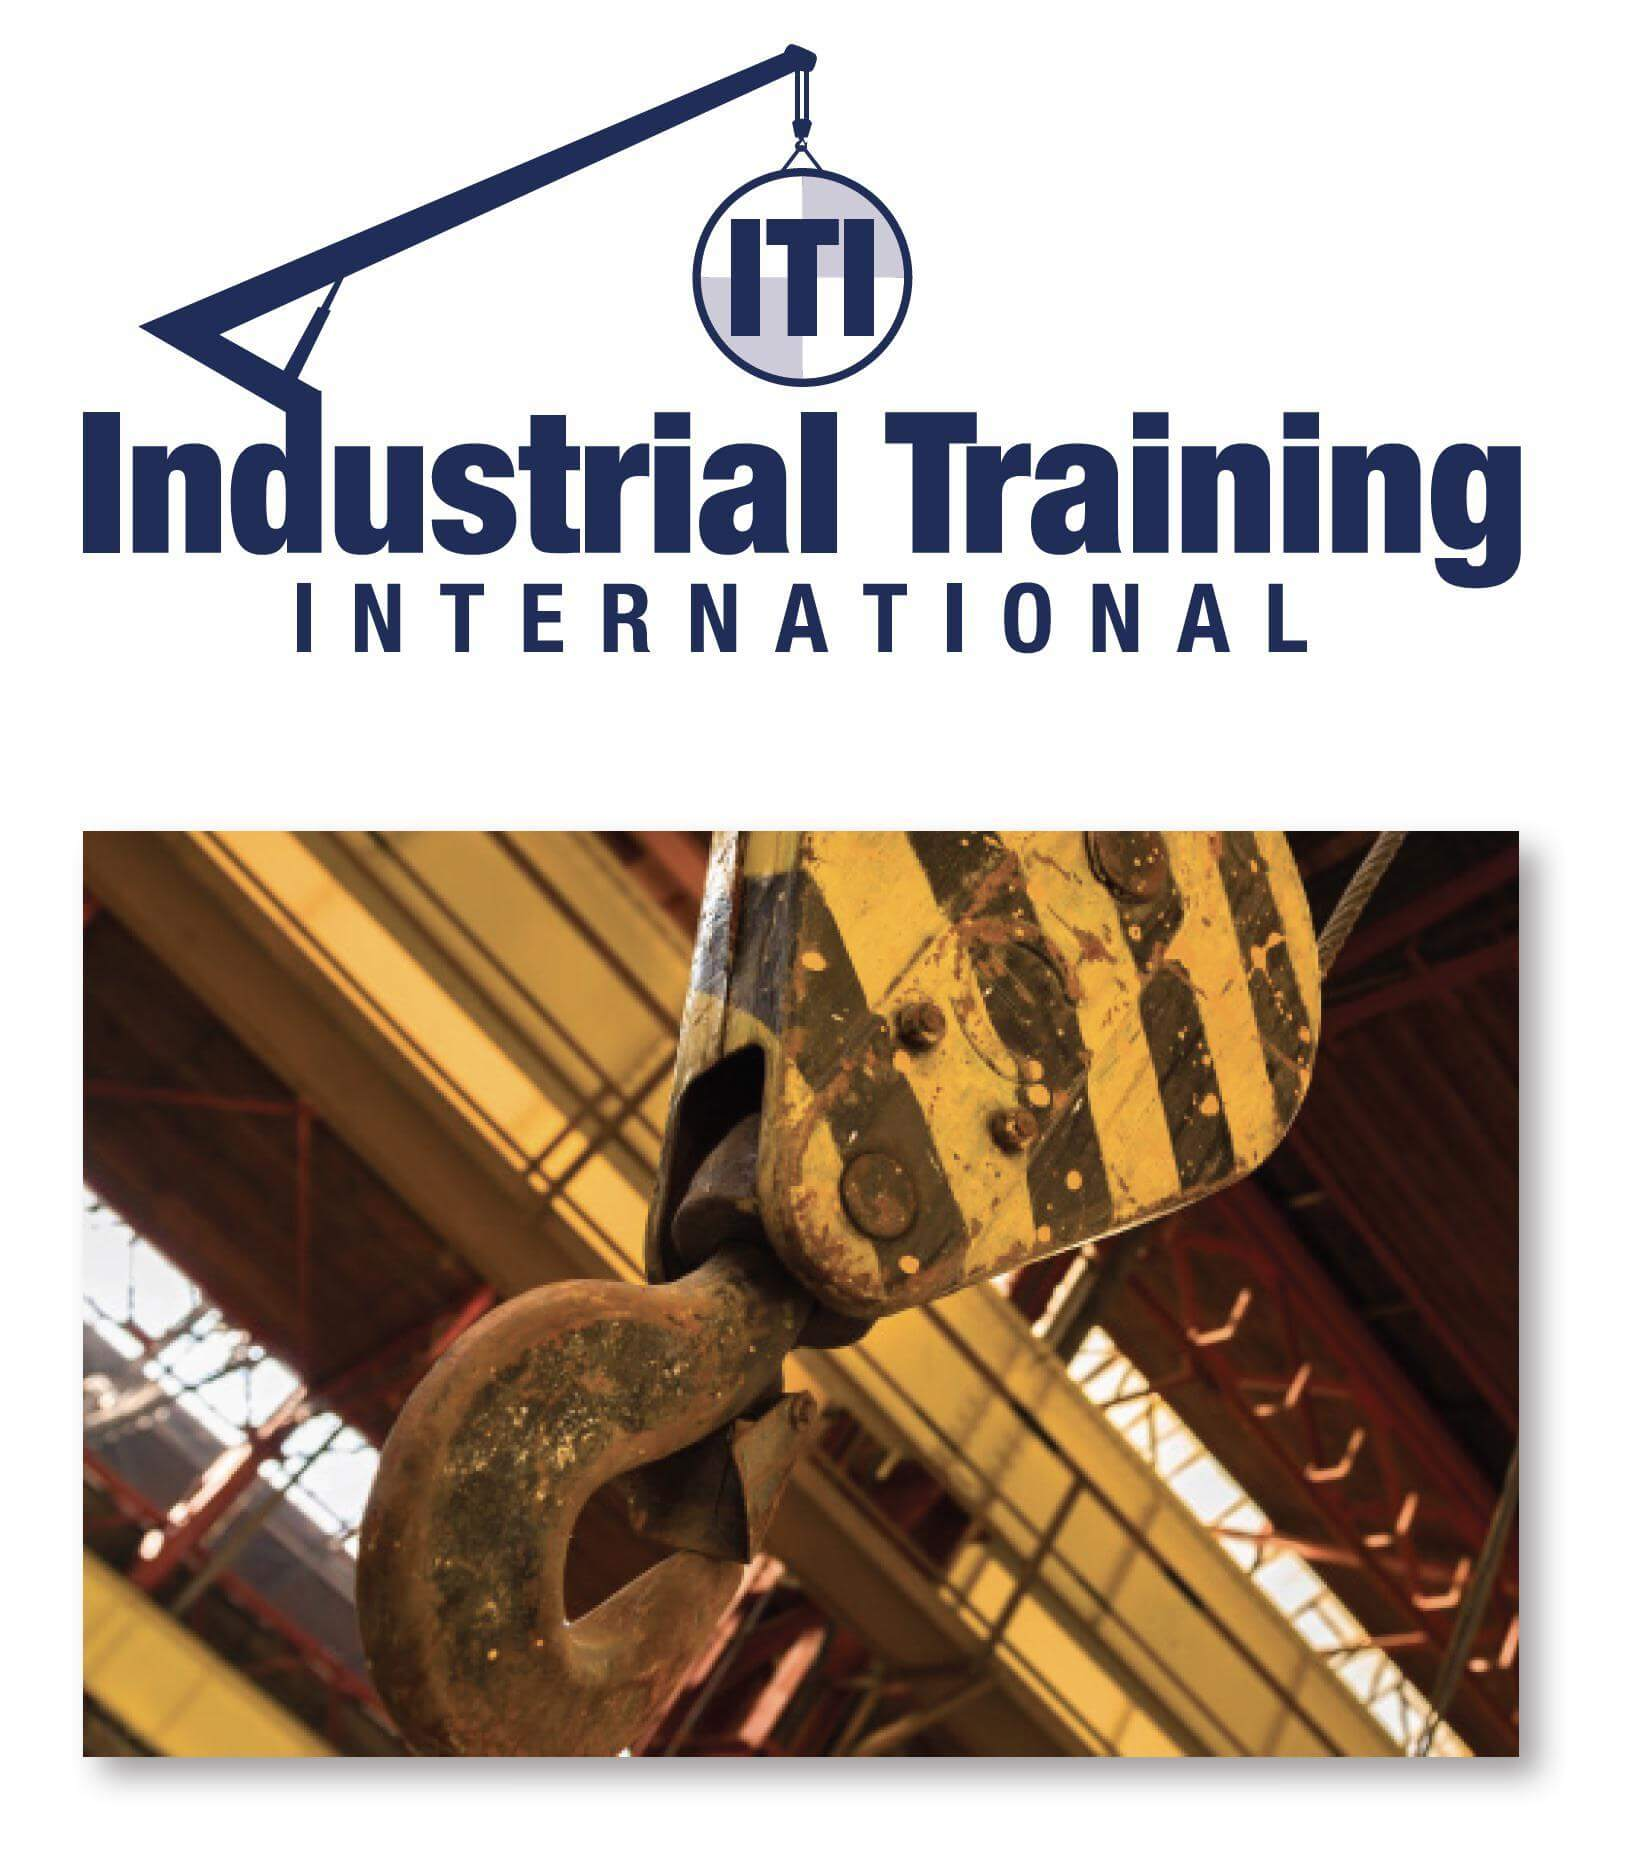 Online Training for Crane, Rigging, & Lift Planning